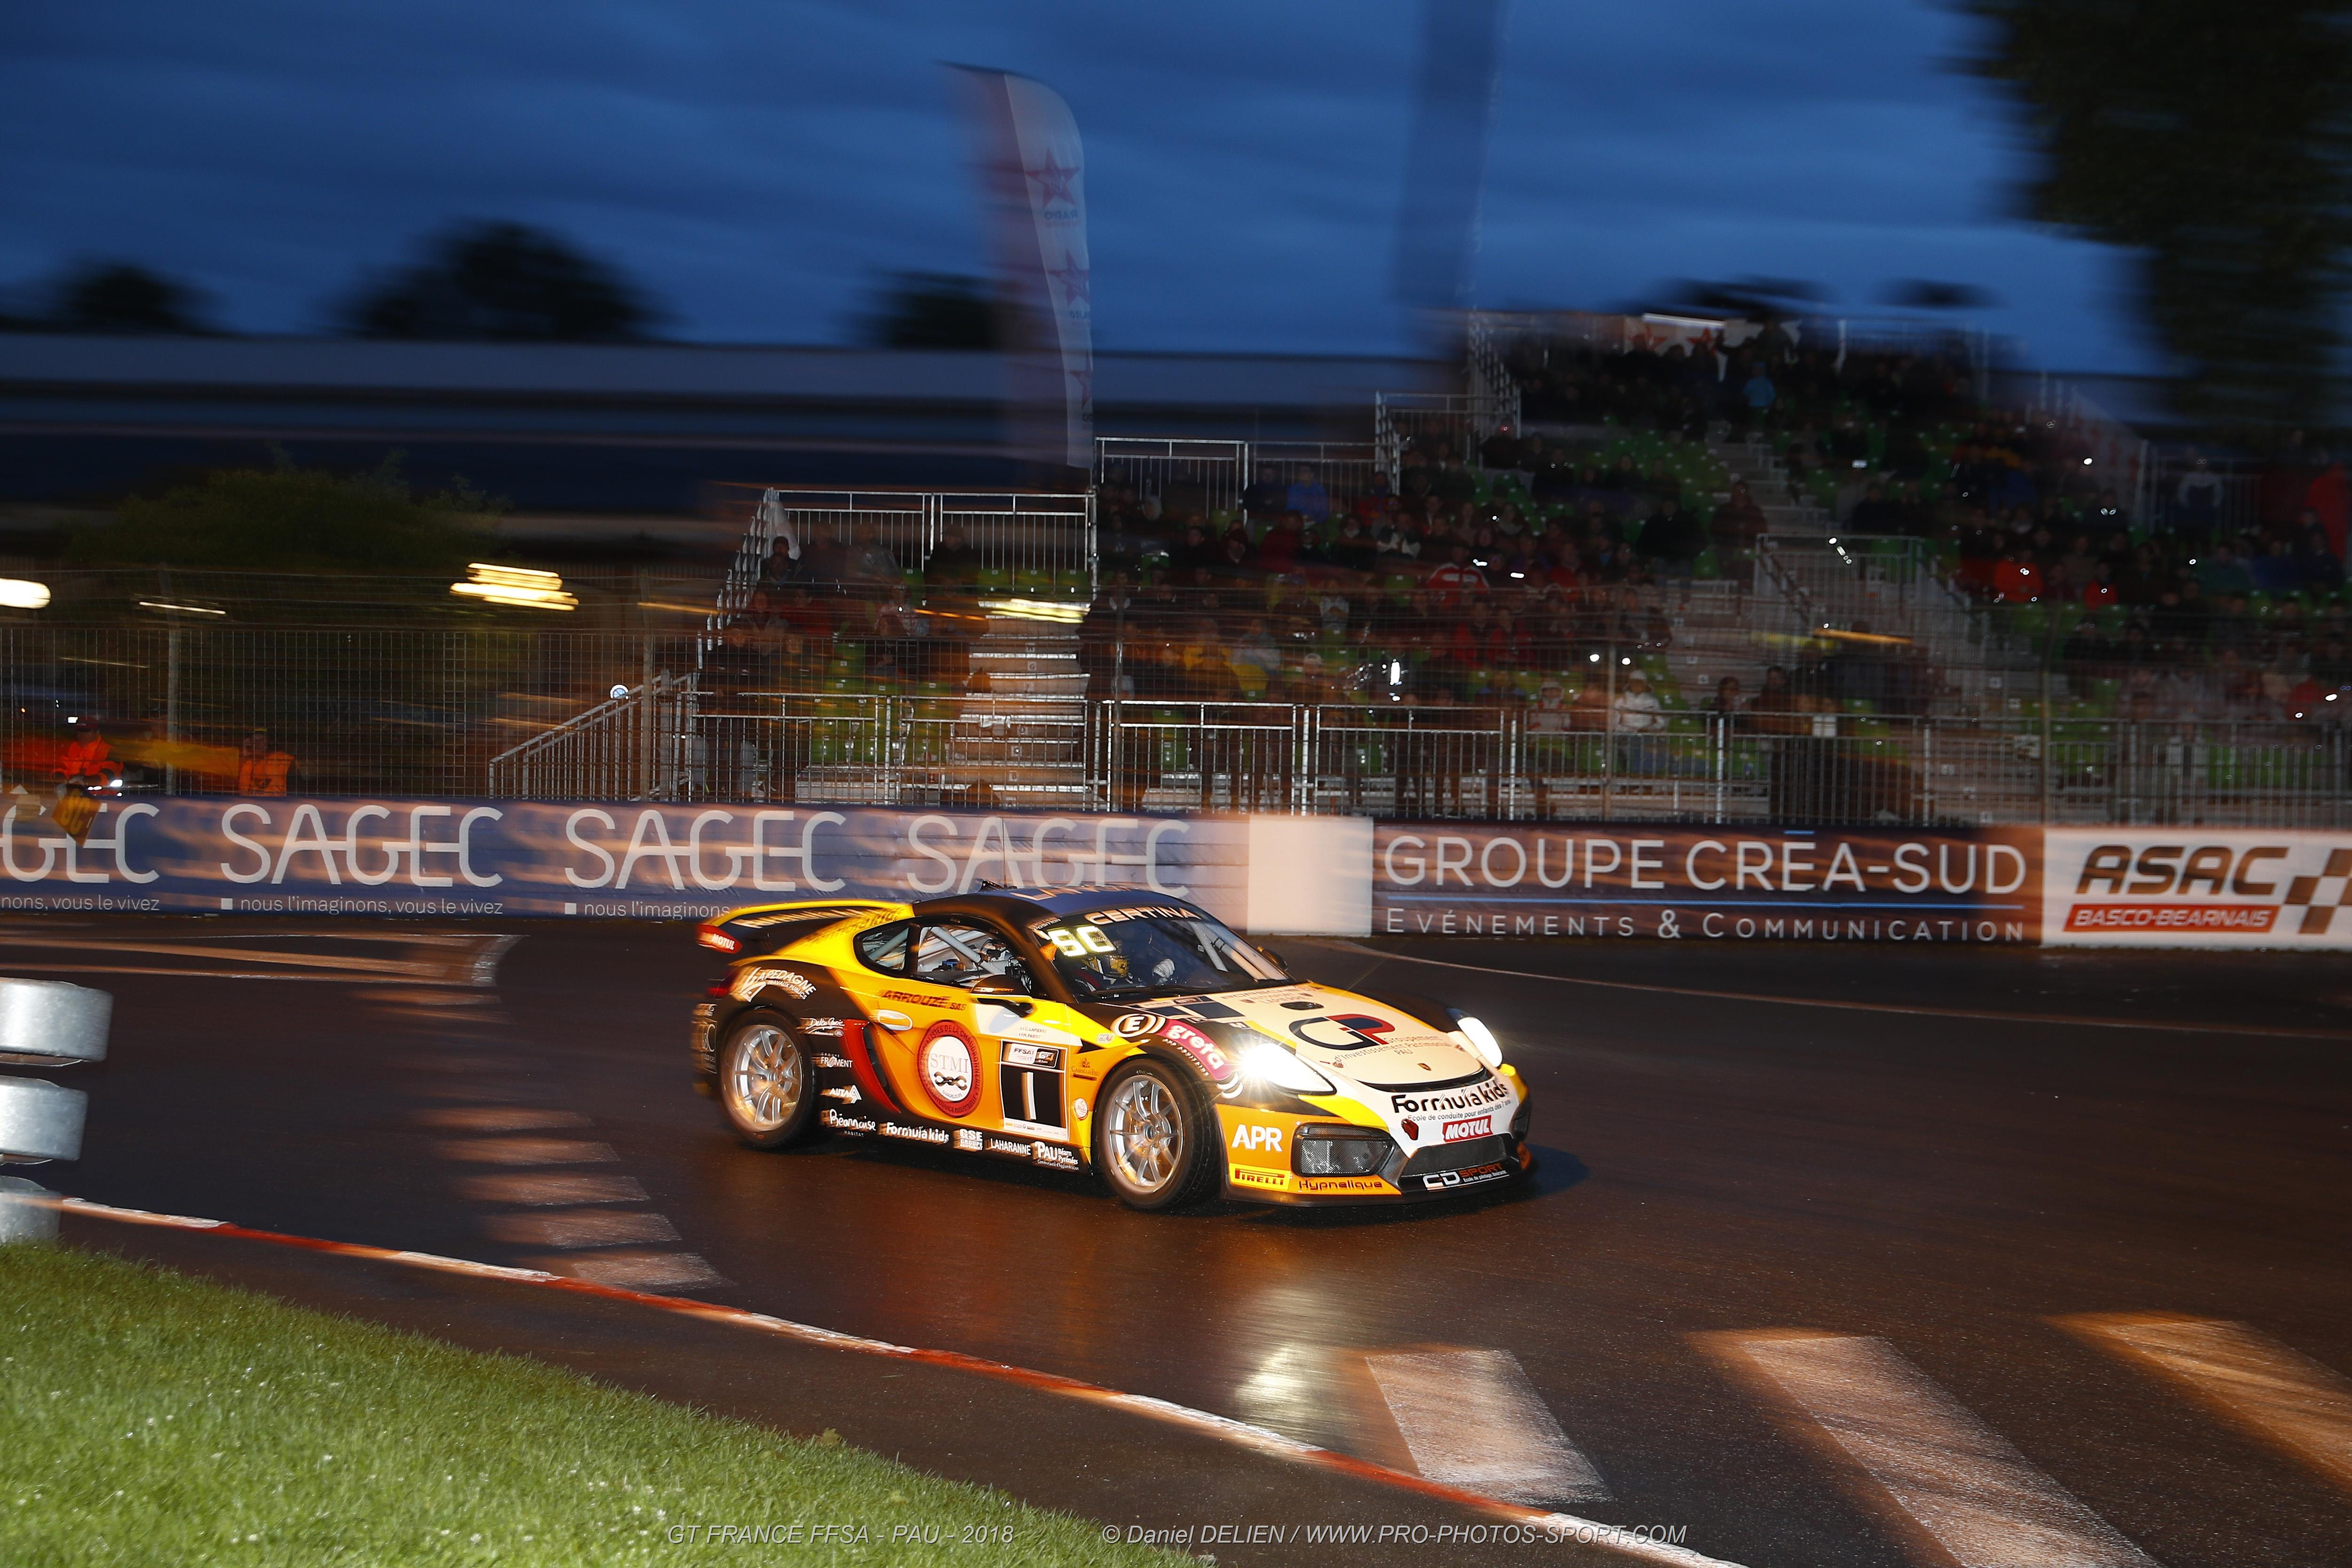 The Pau Grand Prix is one of the jewels among city circuits in motor sport. If the F3s again topped the bill, the GTs left their mark on the public in a thrilling night-time display.